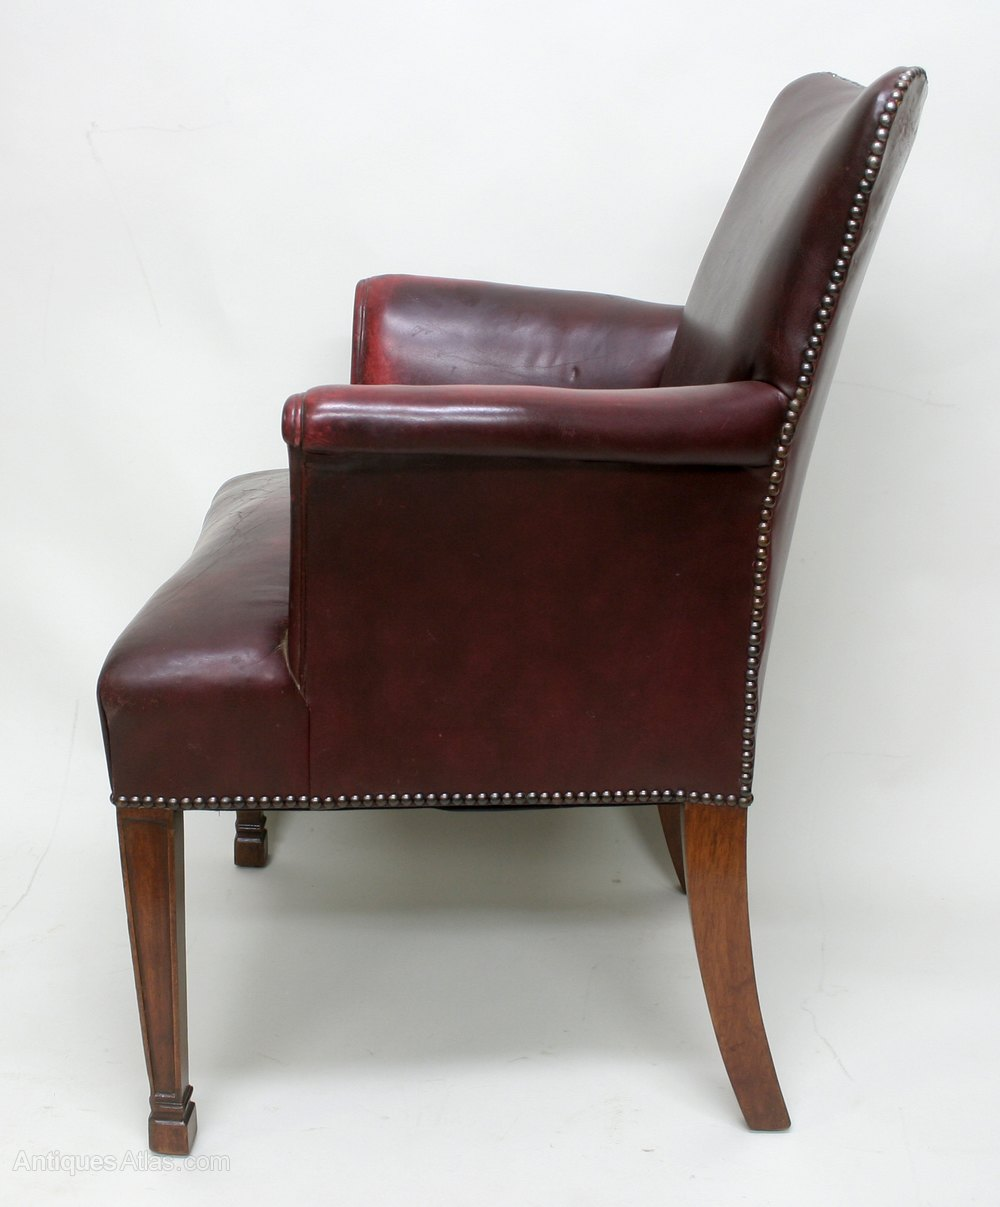 Edwardian leather arm chair antiques atlas for Antique leather chairs